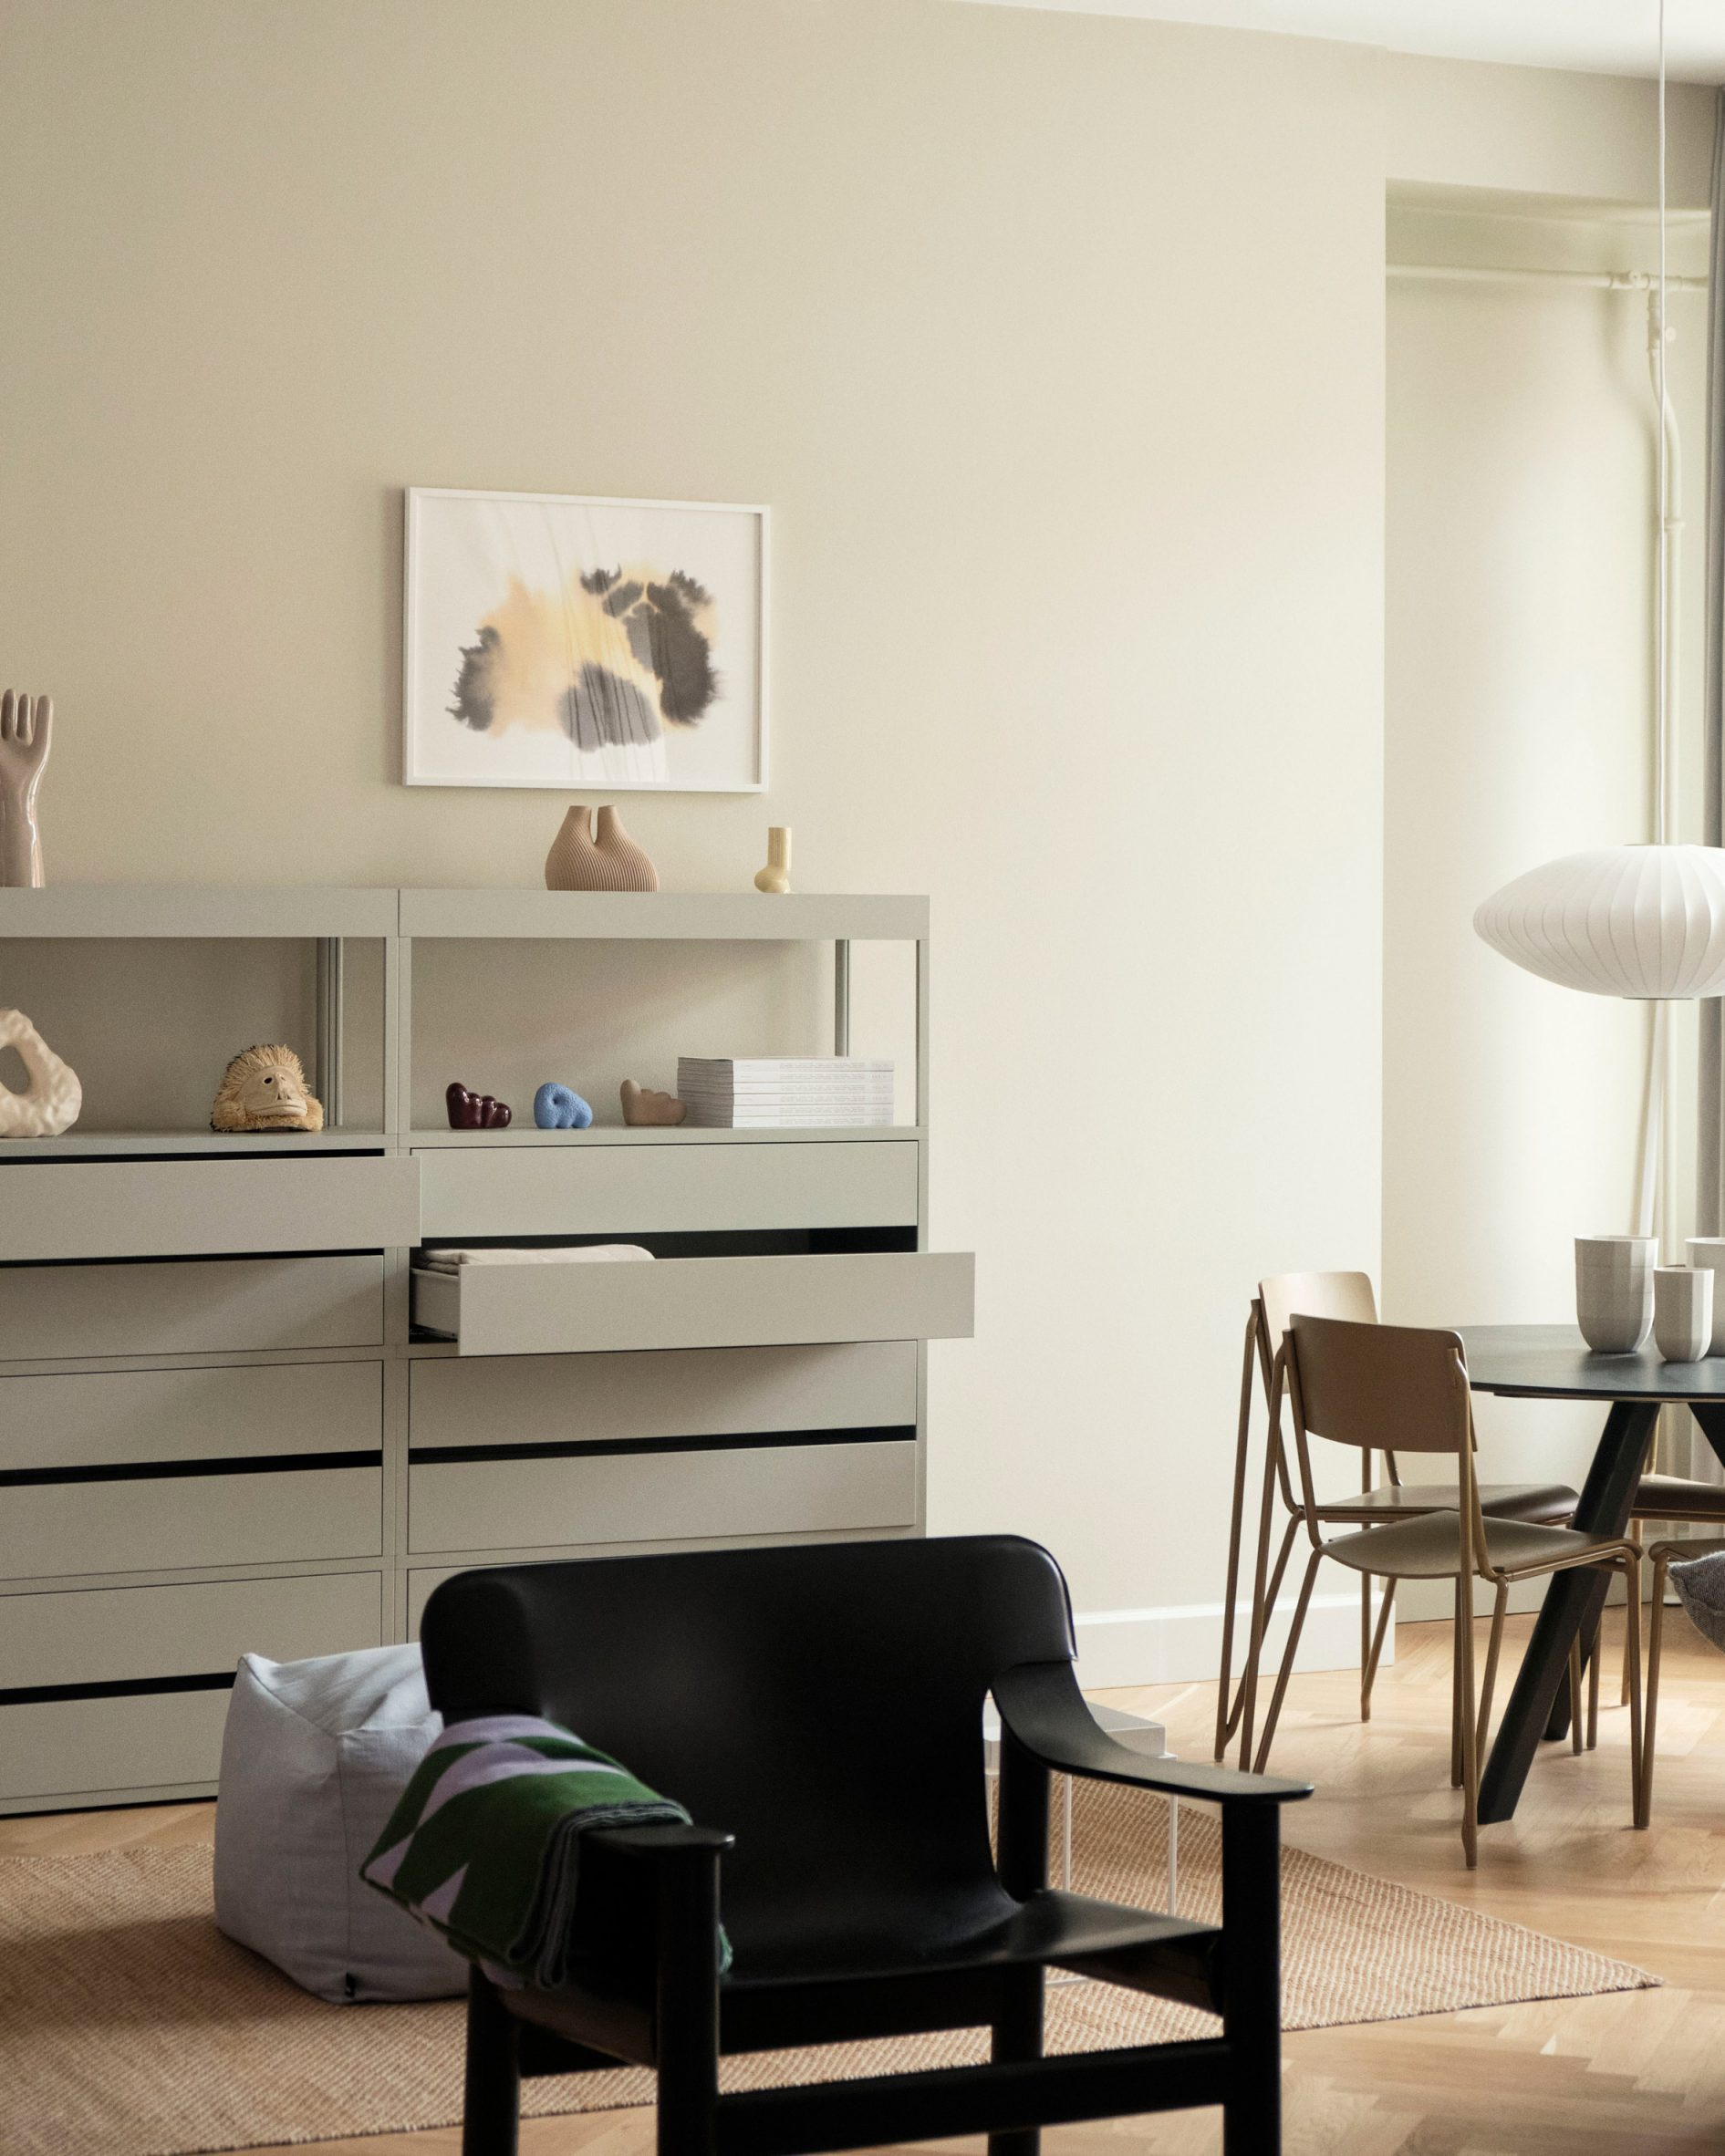 Interiors by Hay